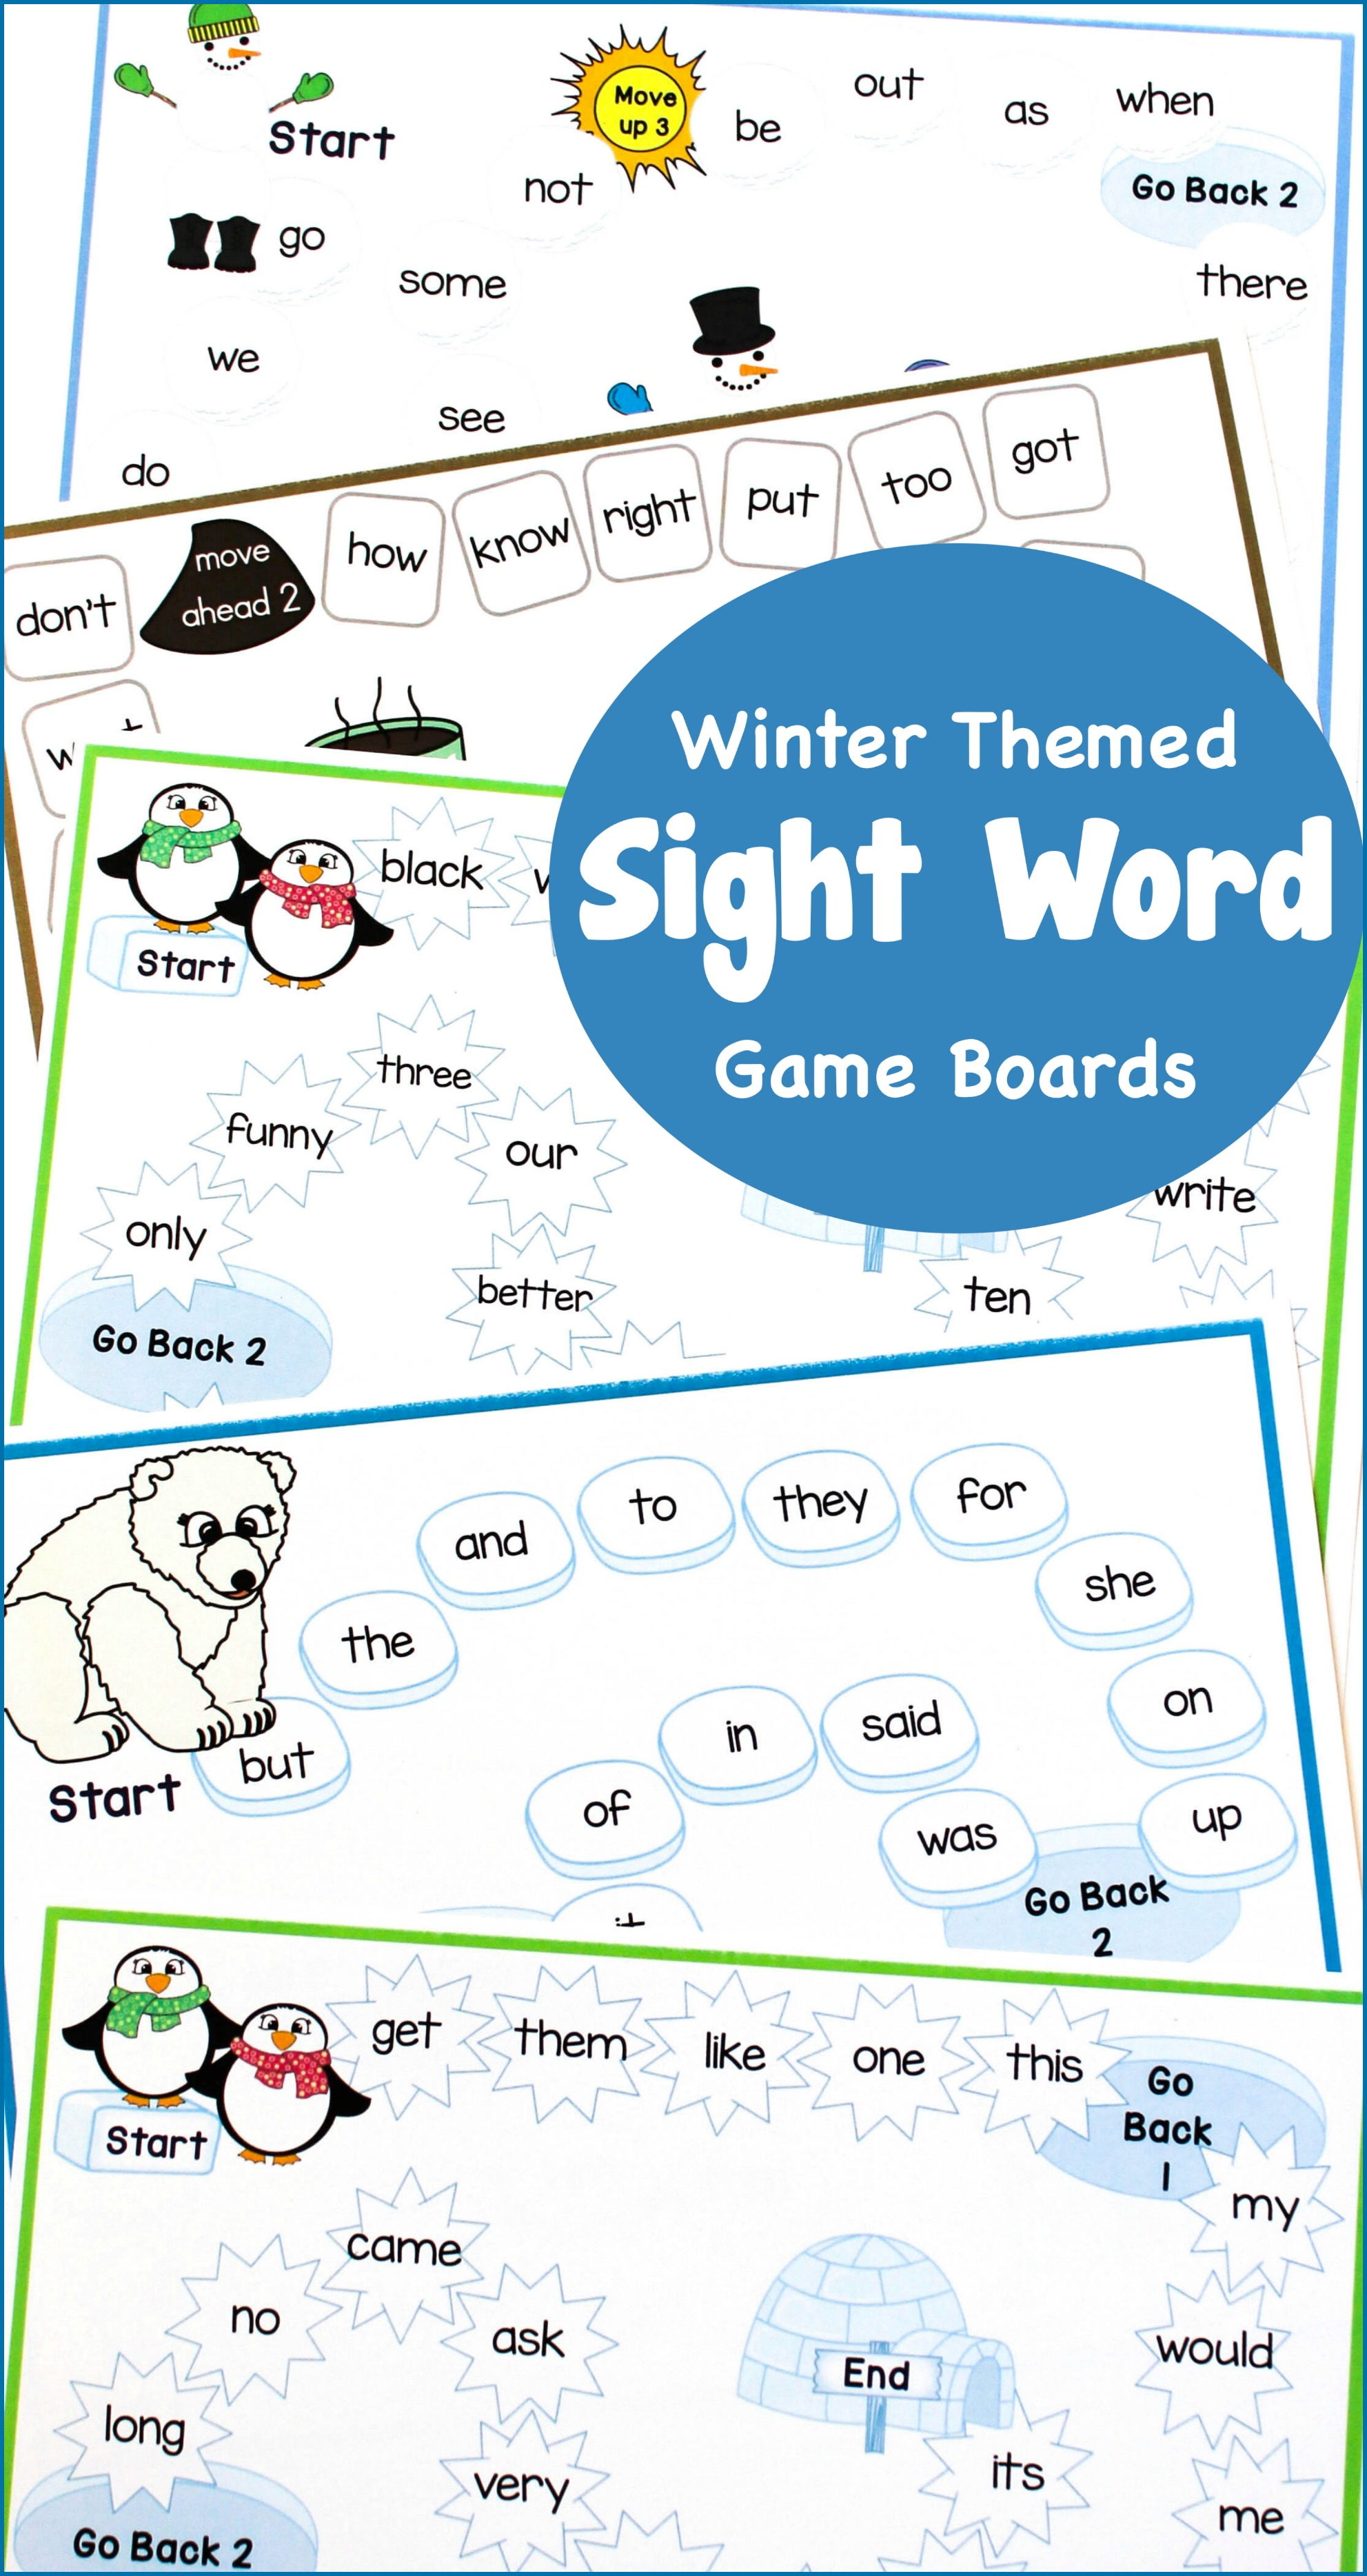 Winter Themed Sight Word Game Boards